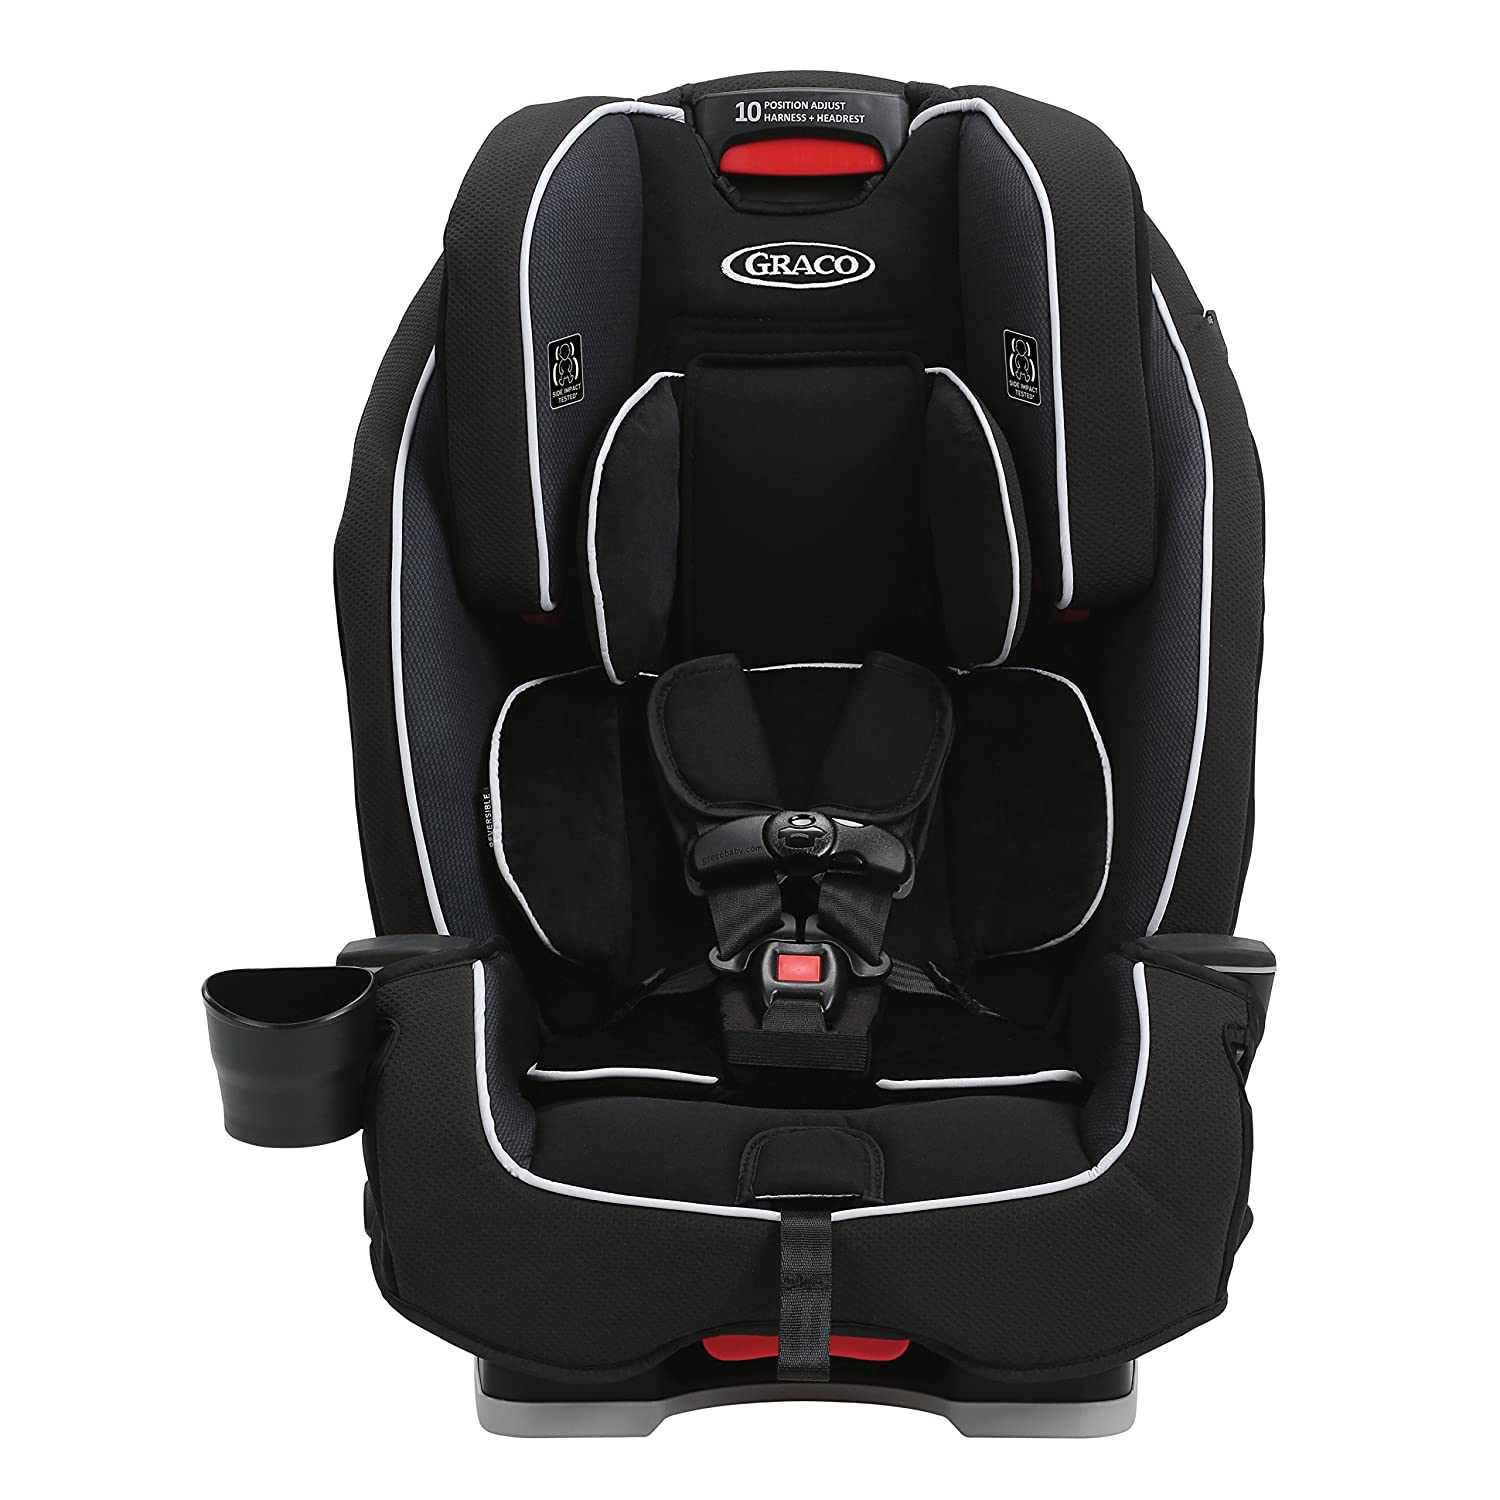 Amazon.com : Graco Milestone All-in-1 Convertible Car Seat, Gotham ...